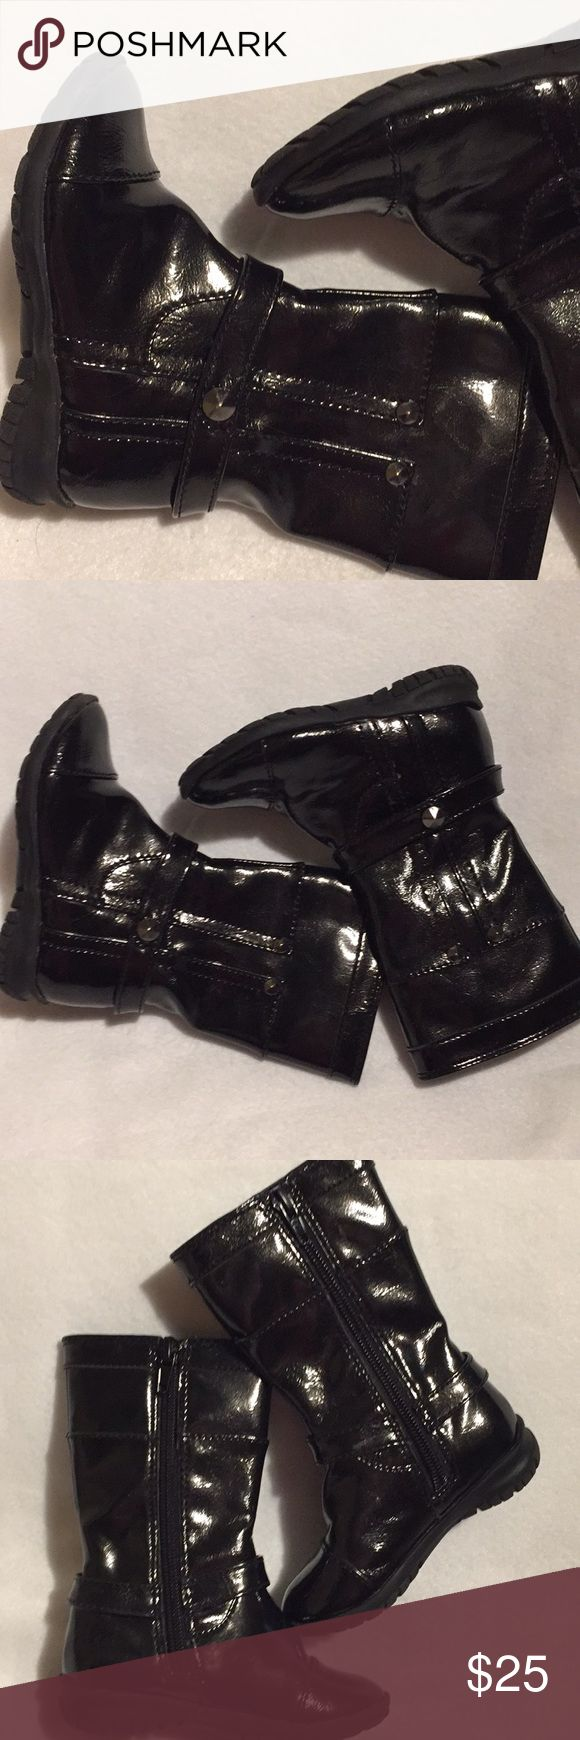 Nordstrom Girls' Boots Noratrom girls boots EU Sz 22, US Sz 6-6.5 in perfect worn 1x condition! We've owned these in many sizes and colors. A fav of my picky-shoe-girl who wants comfort and the ability to climb on the playground in her shoes. Graphite black. Literally worn once! Nordstrom Shoes Boots